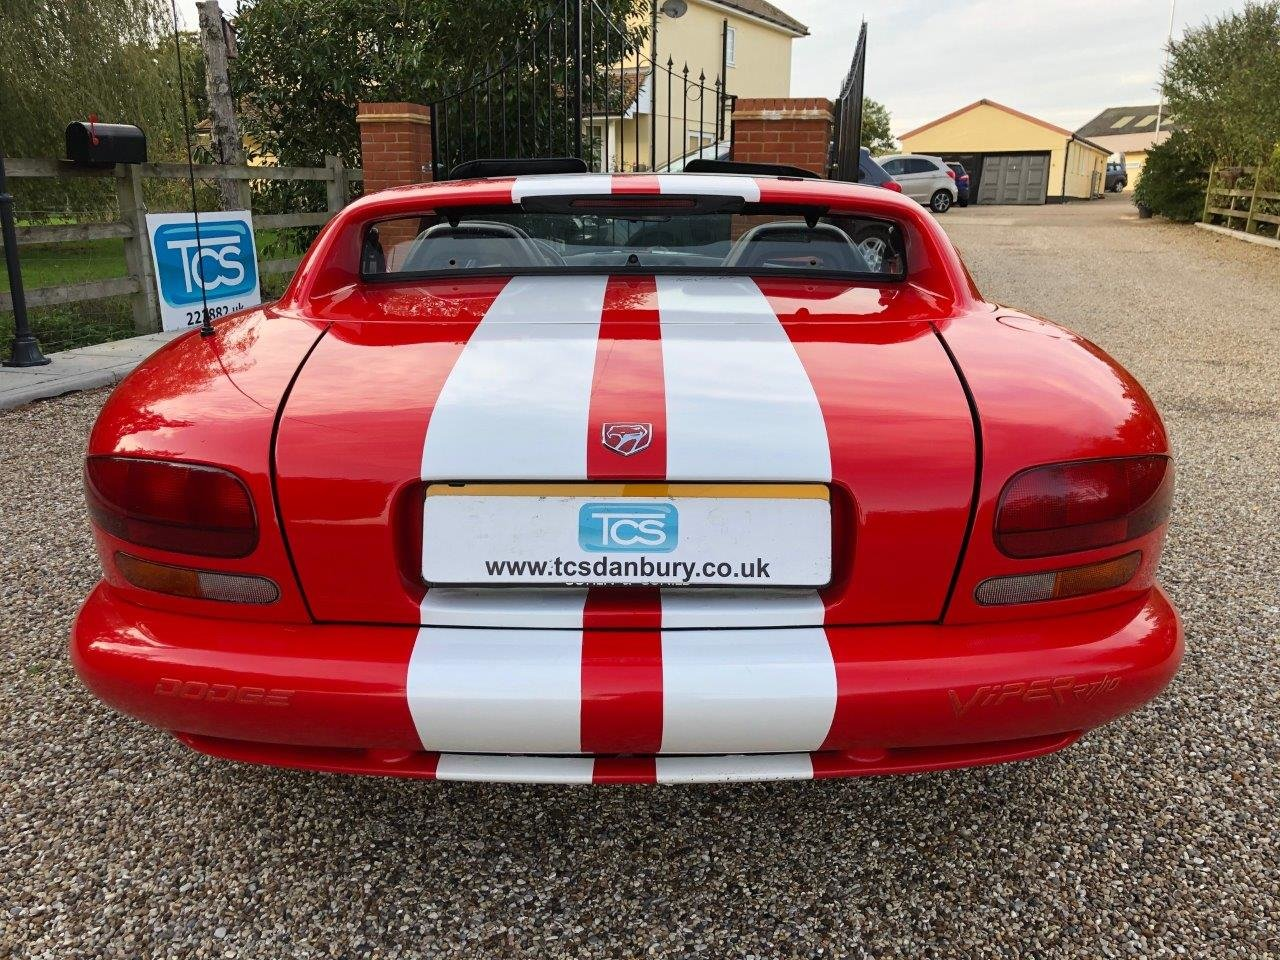 1992 Dodge Viper RT/10 8.0L V10 400bhp 6-Speed Manual For Sale (picture 5 of 6)